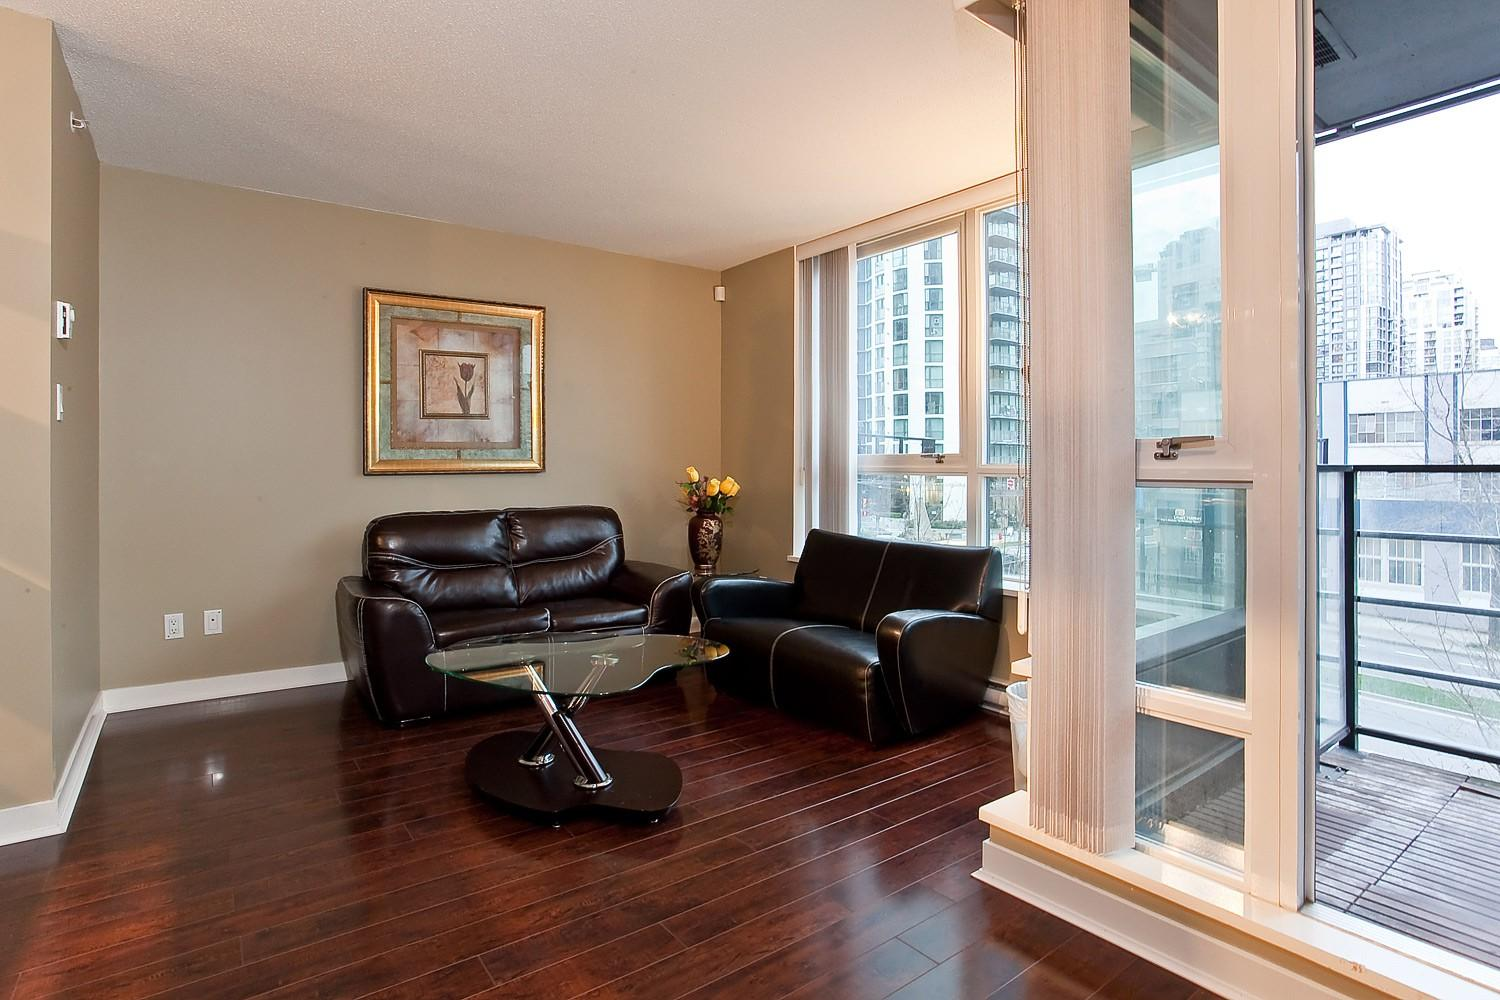 $1187 1 bedroom Apartment in Vancouver Area Yaletown photo #1